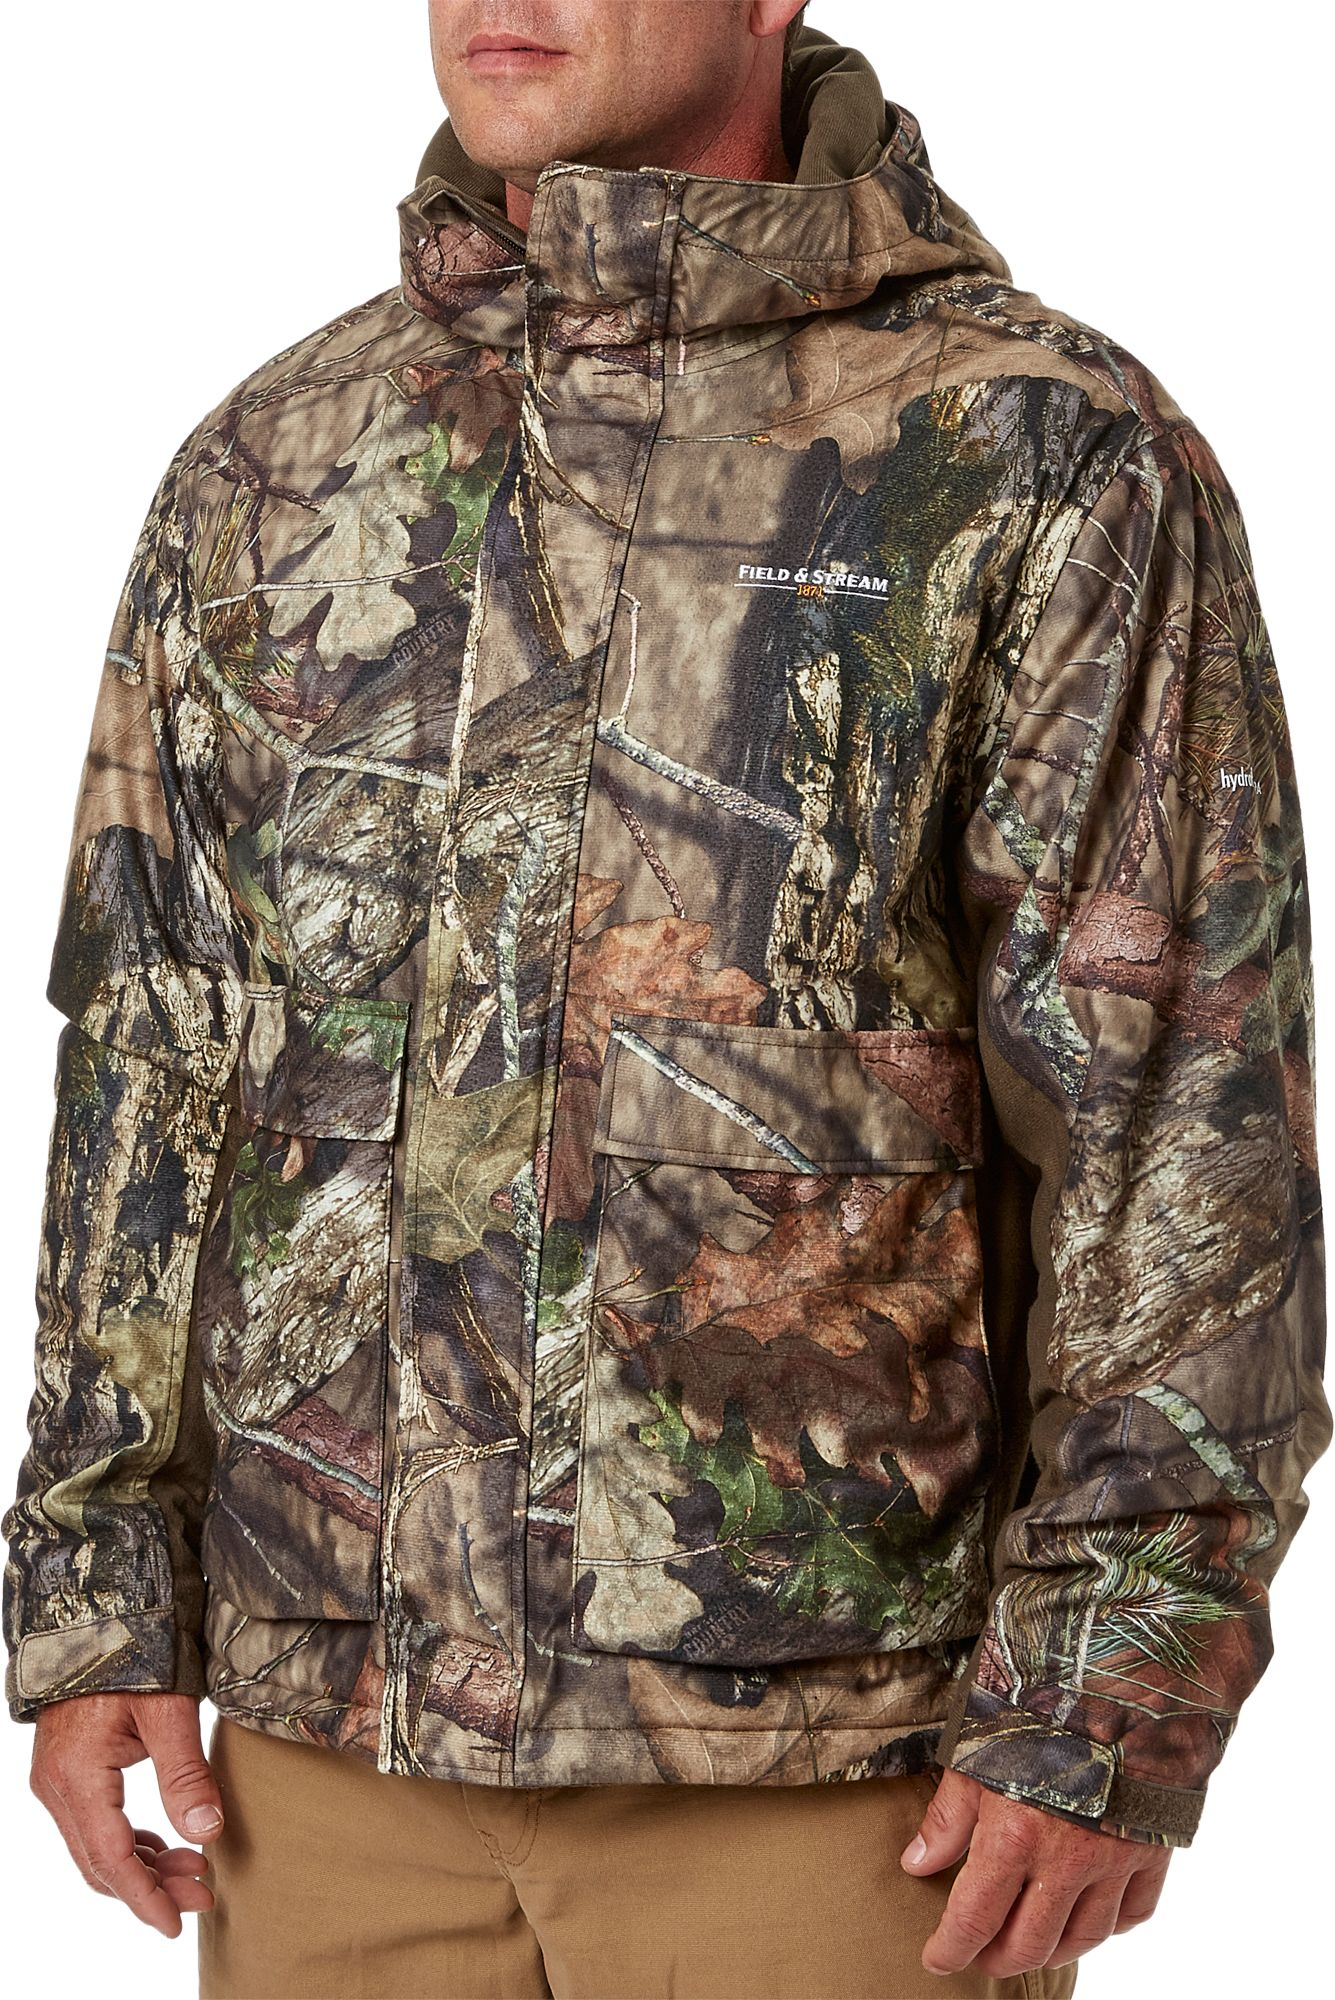 Field & Stream Men's True Pursuit Insulated Hunting Jacket, Size: Medium, Mossy Oak Brk Up Country thumbnail